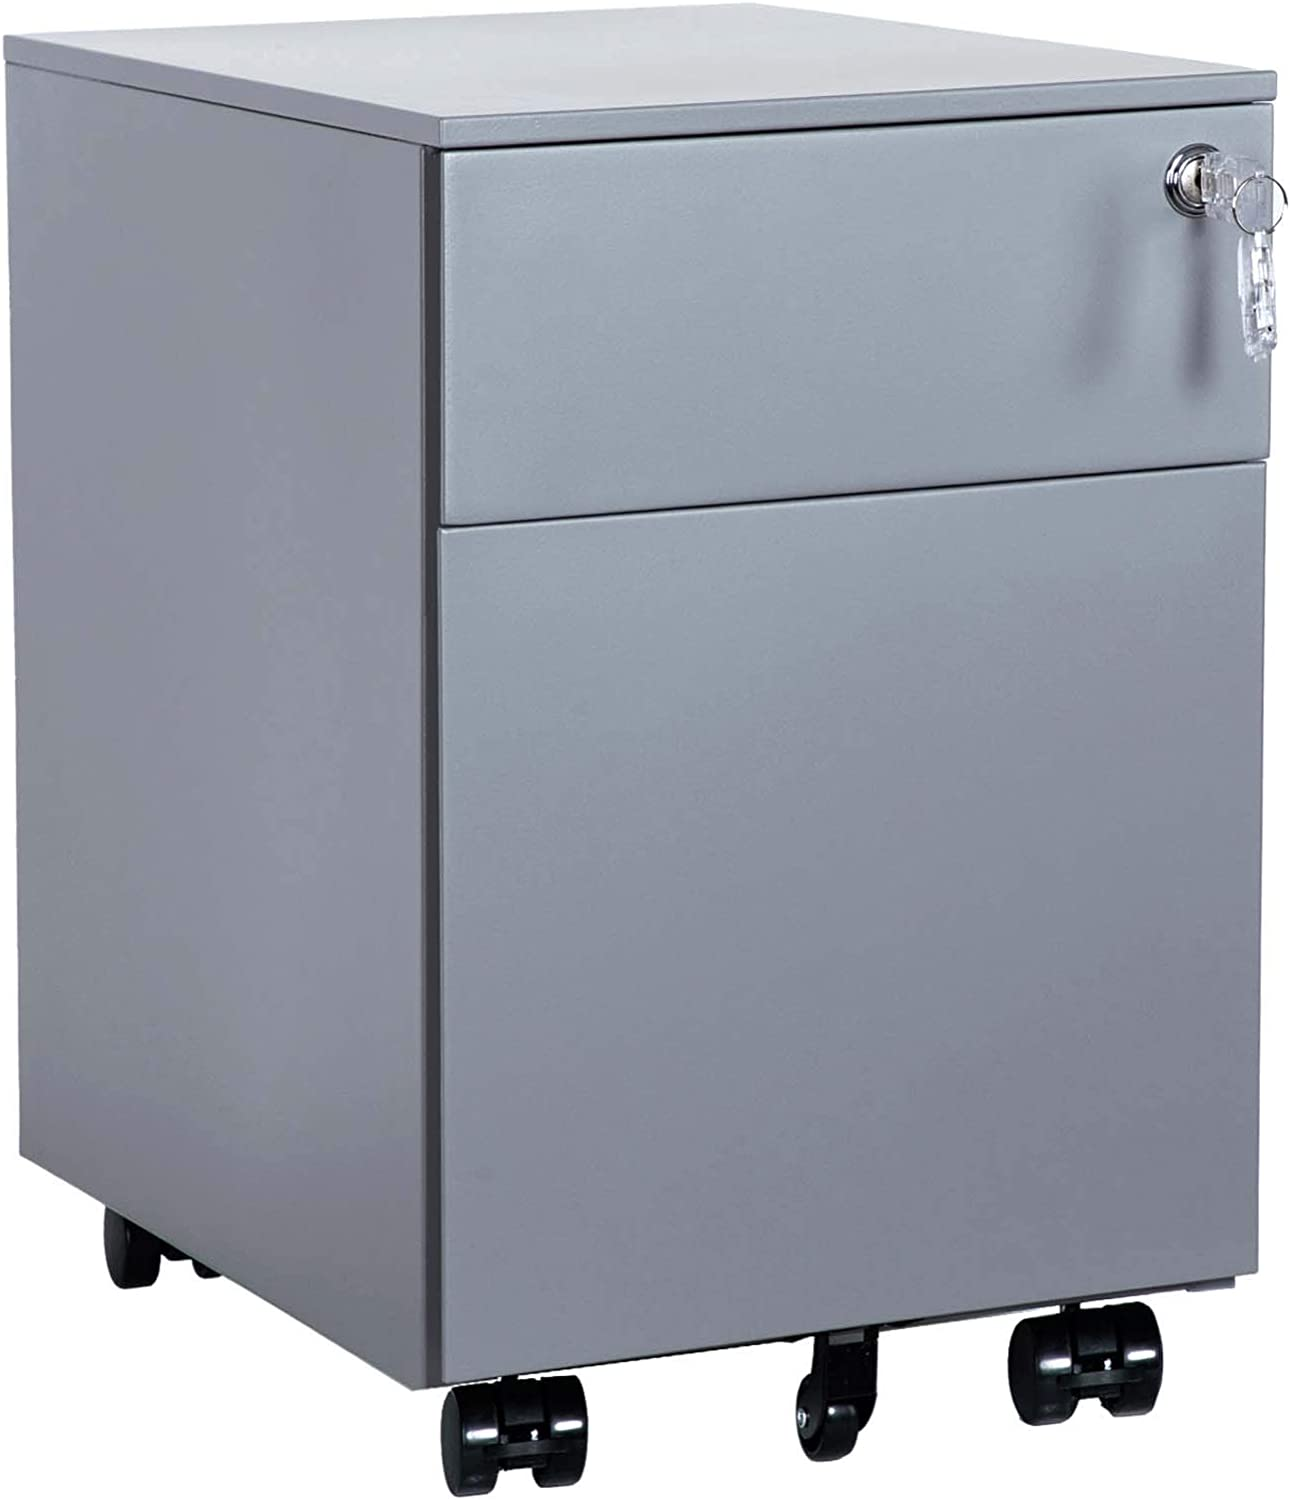 AIMEZO 2-Drawer Mobile File Cabinet Under Desk Storage for Home Office, Fully Assembled Silver